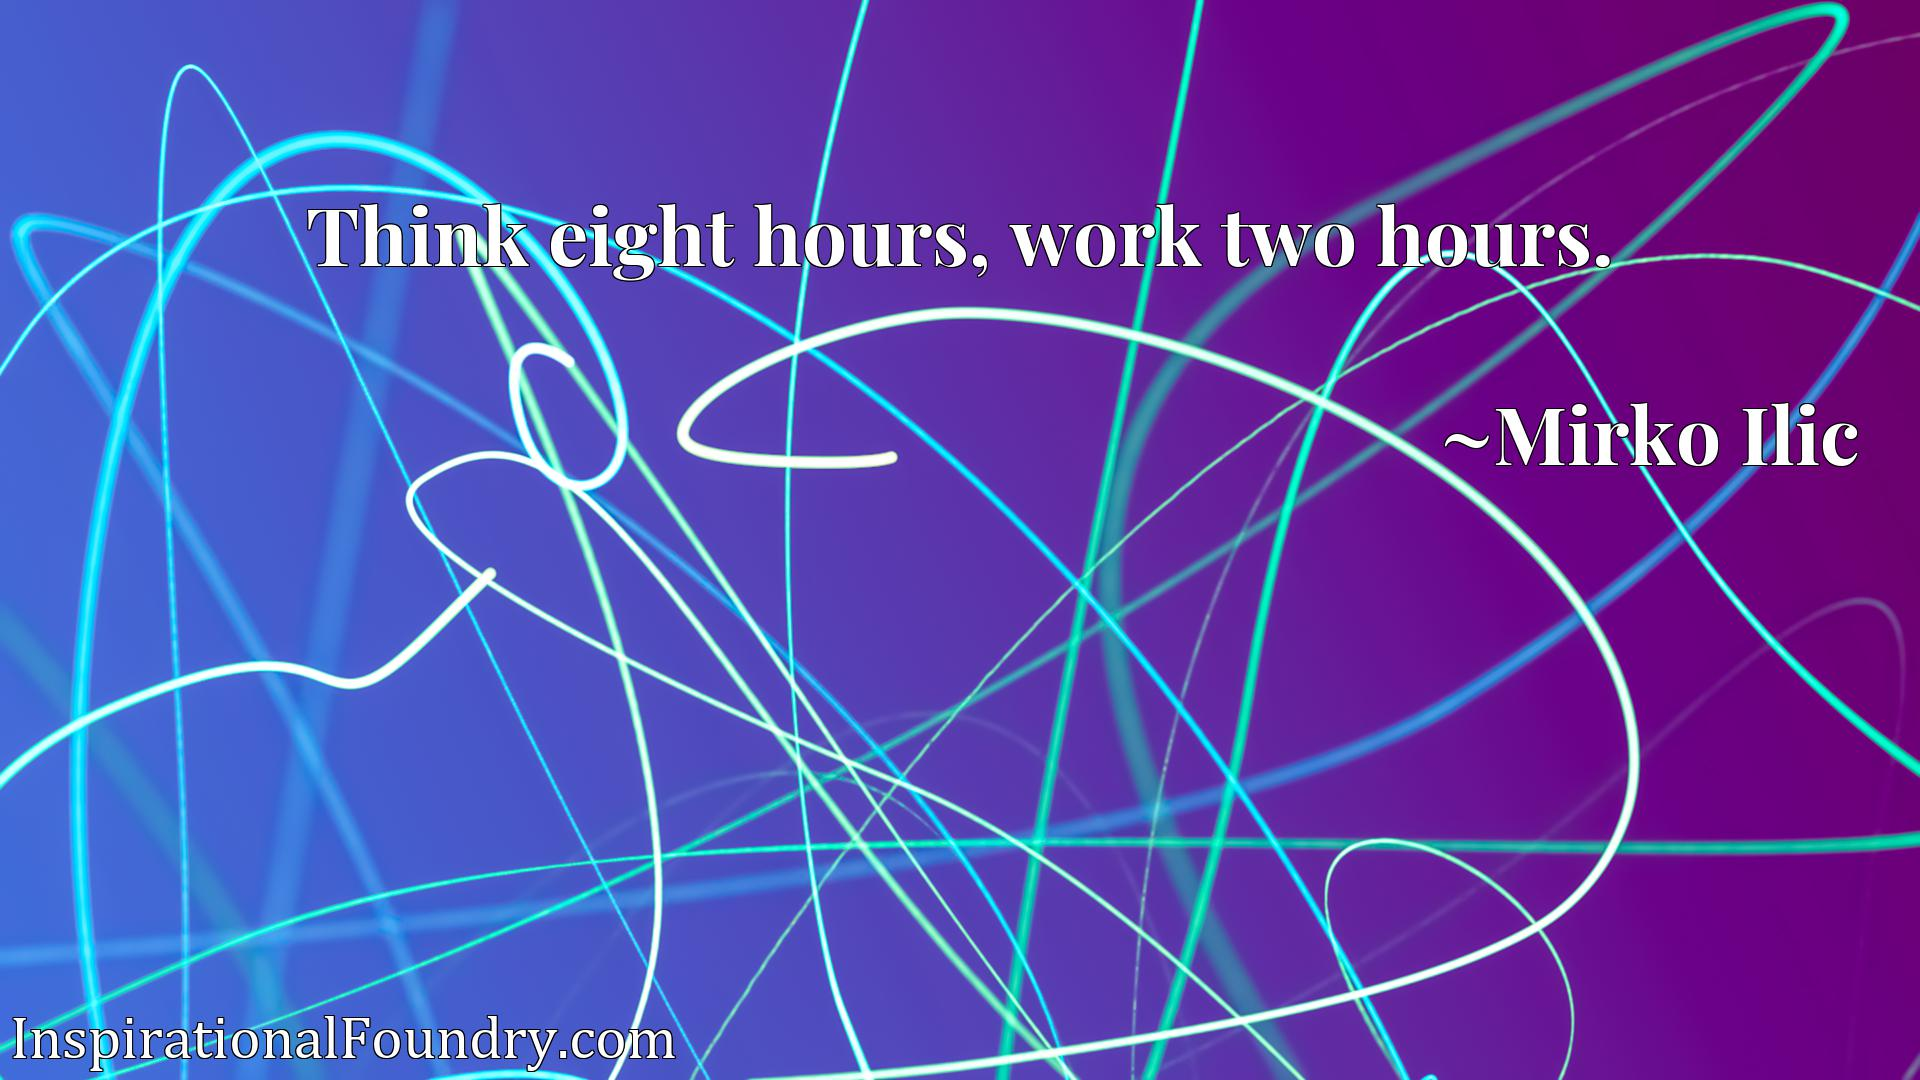 Think eight hours, work two hours.